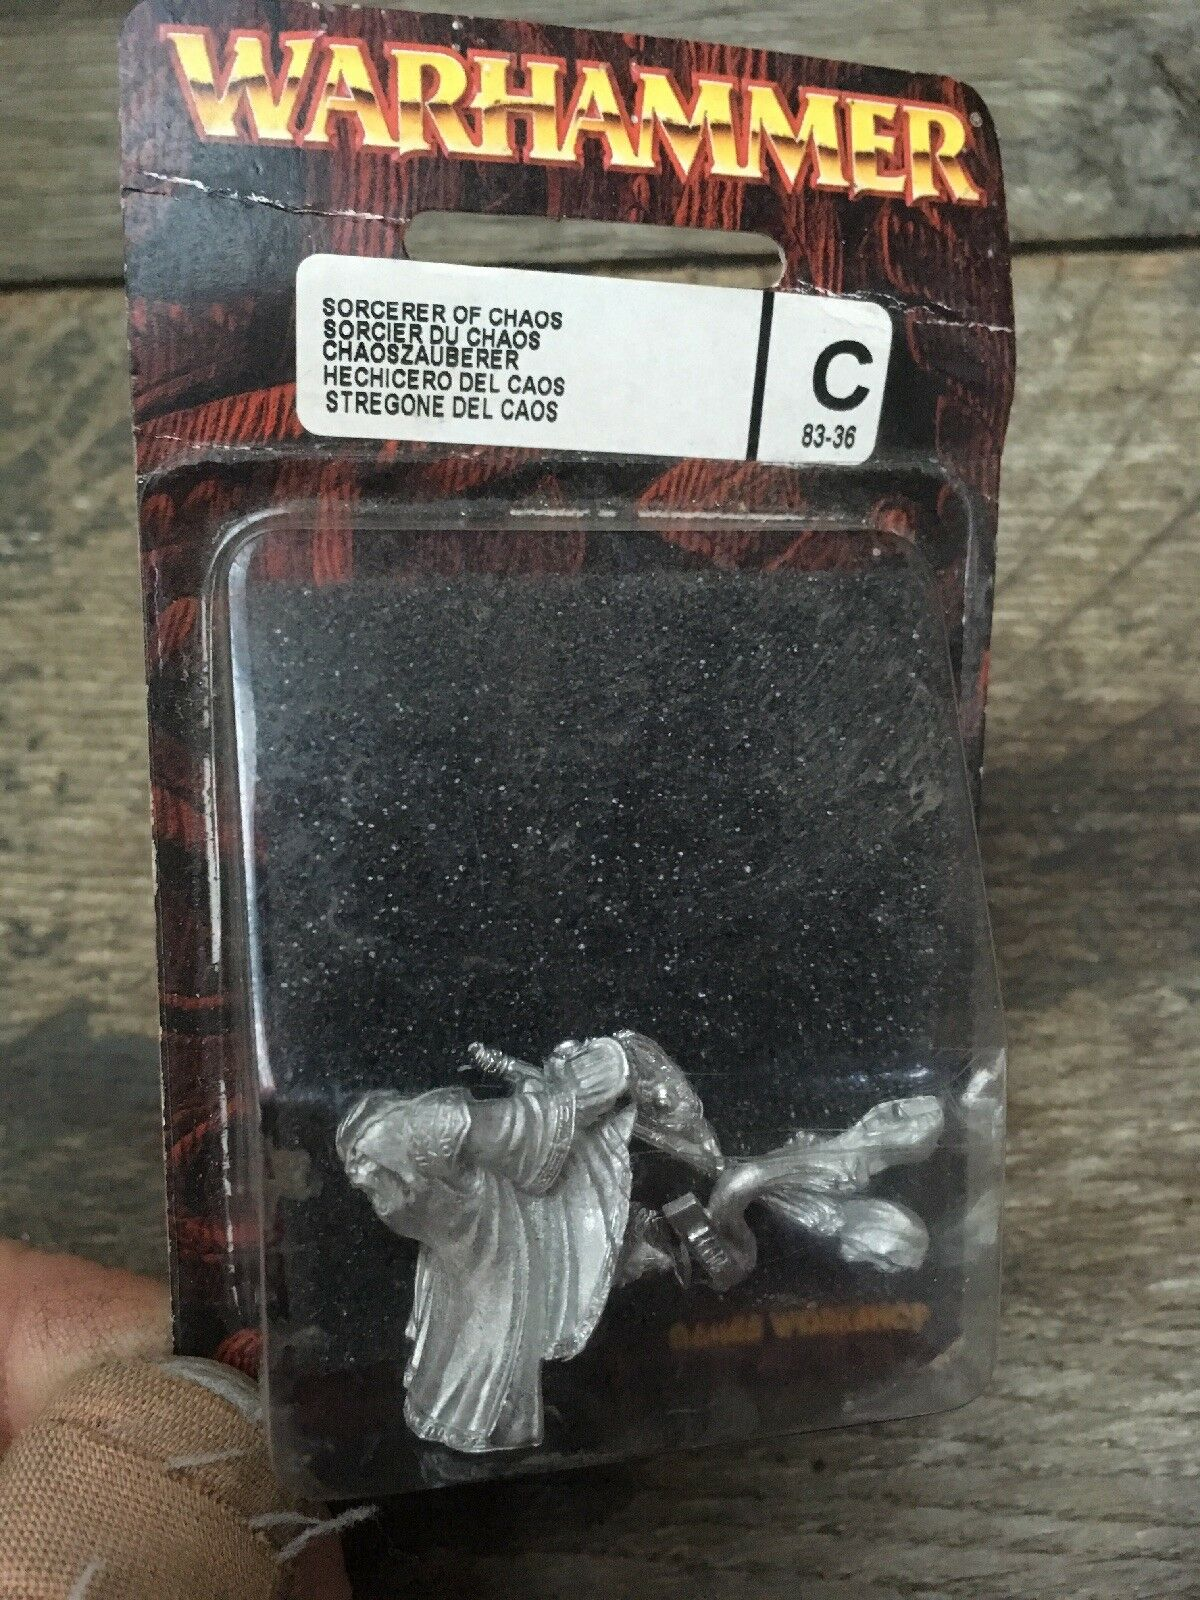 Warhammer Sorcier du Chaos métal Blister New Games Workshop Citadel personnel